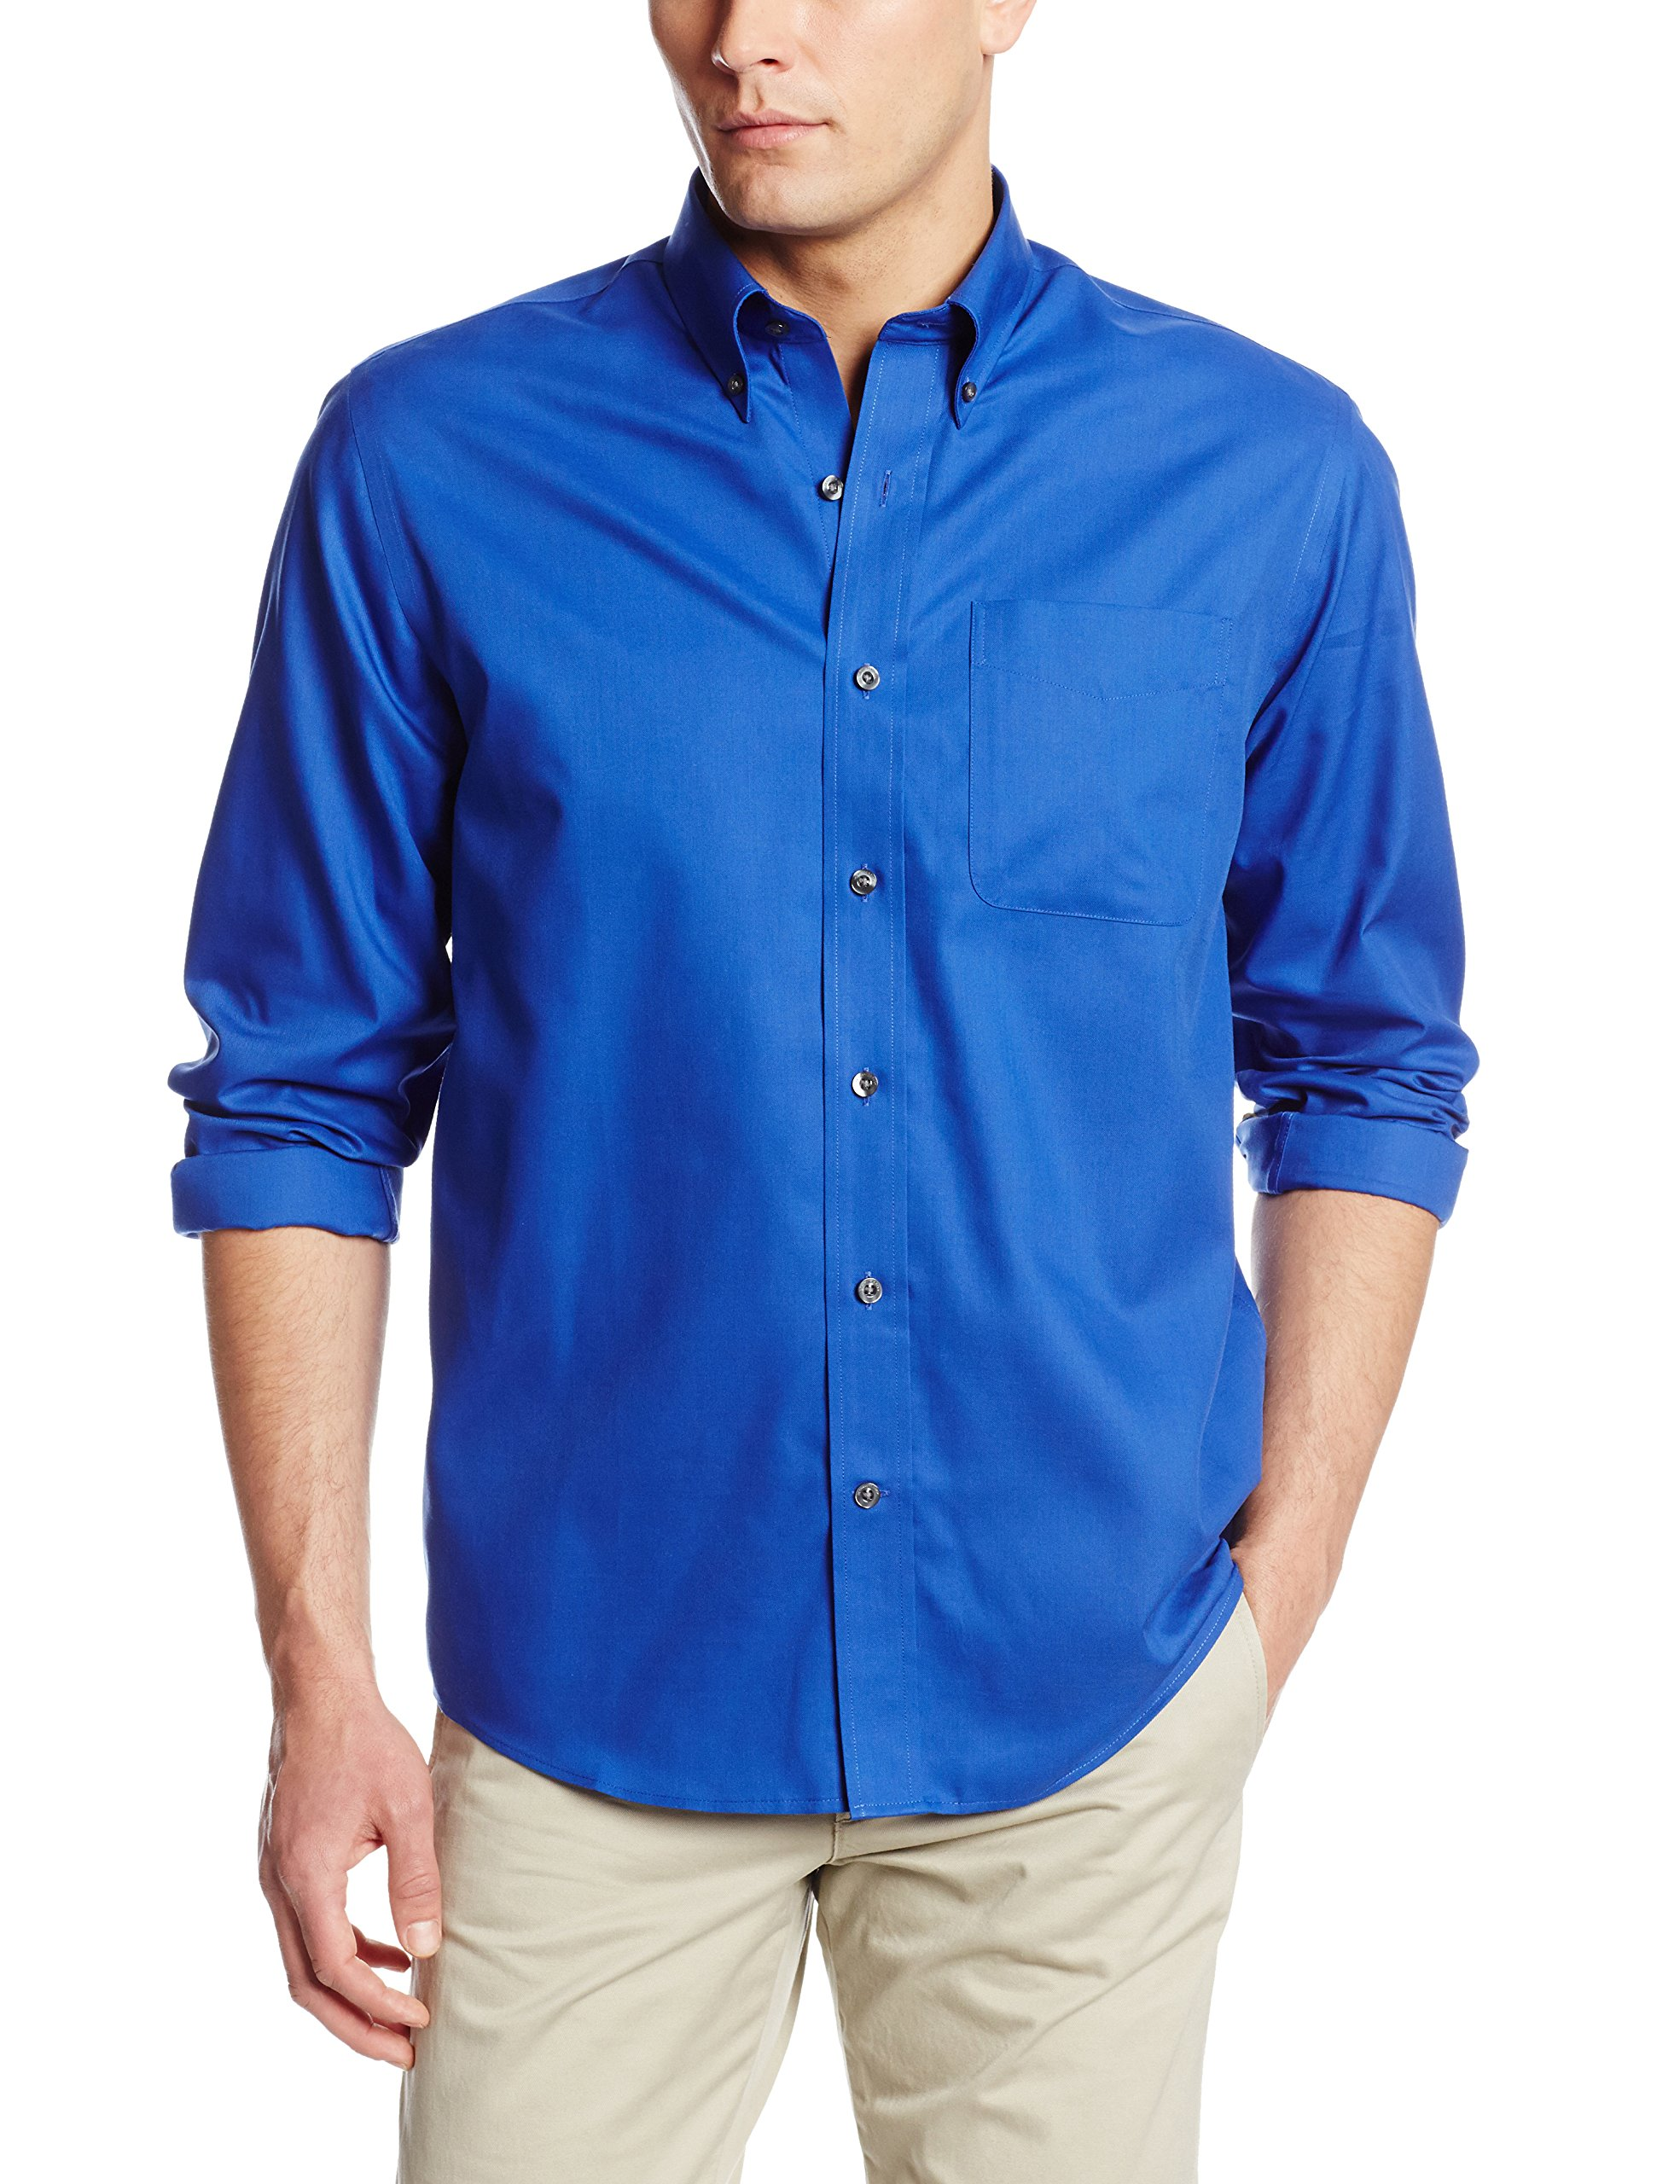 Cutter & Buck Men's Epic Easy Care Fine Twill Shirt, French Blue, Small